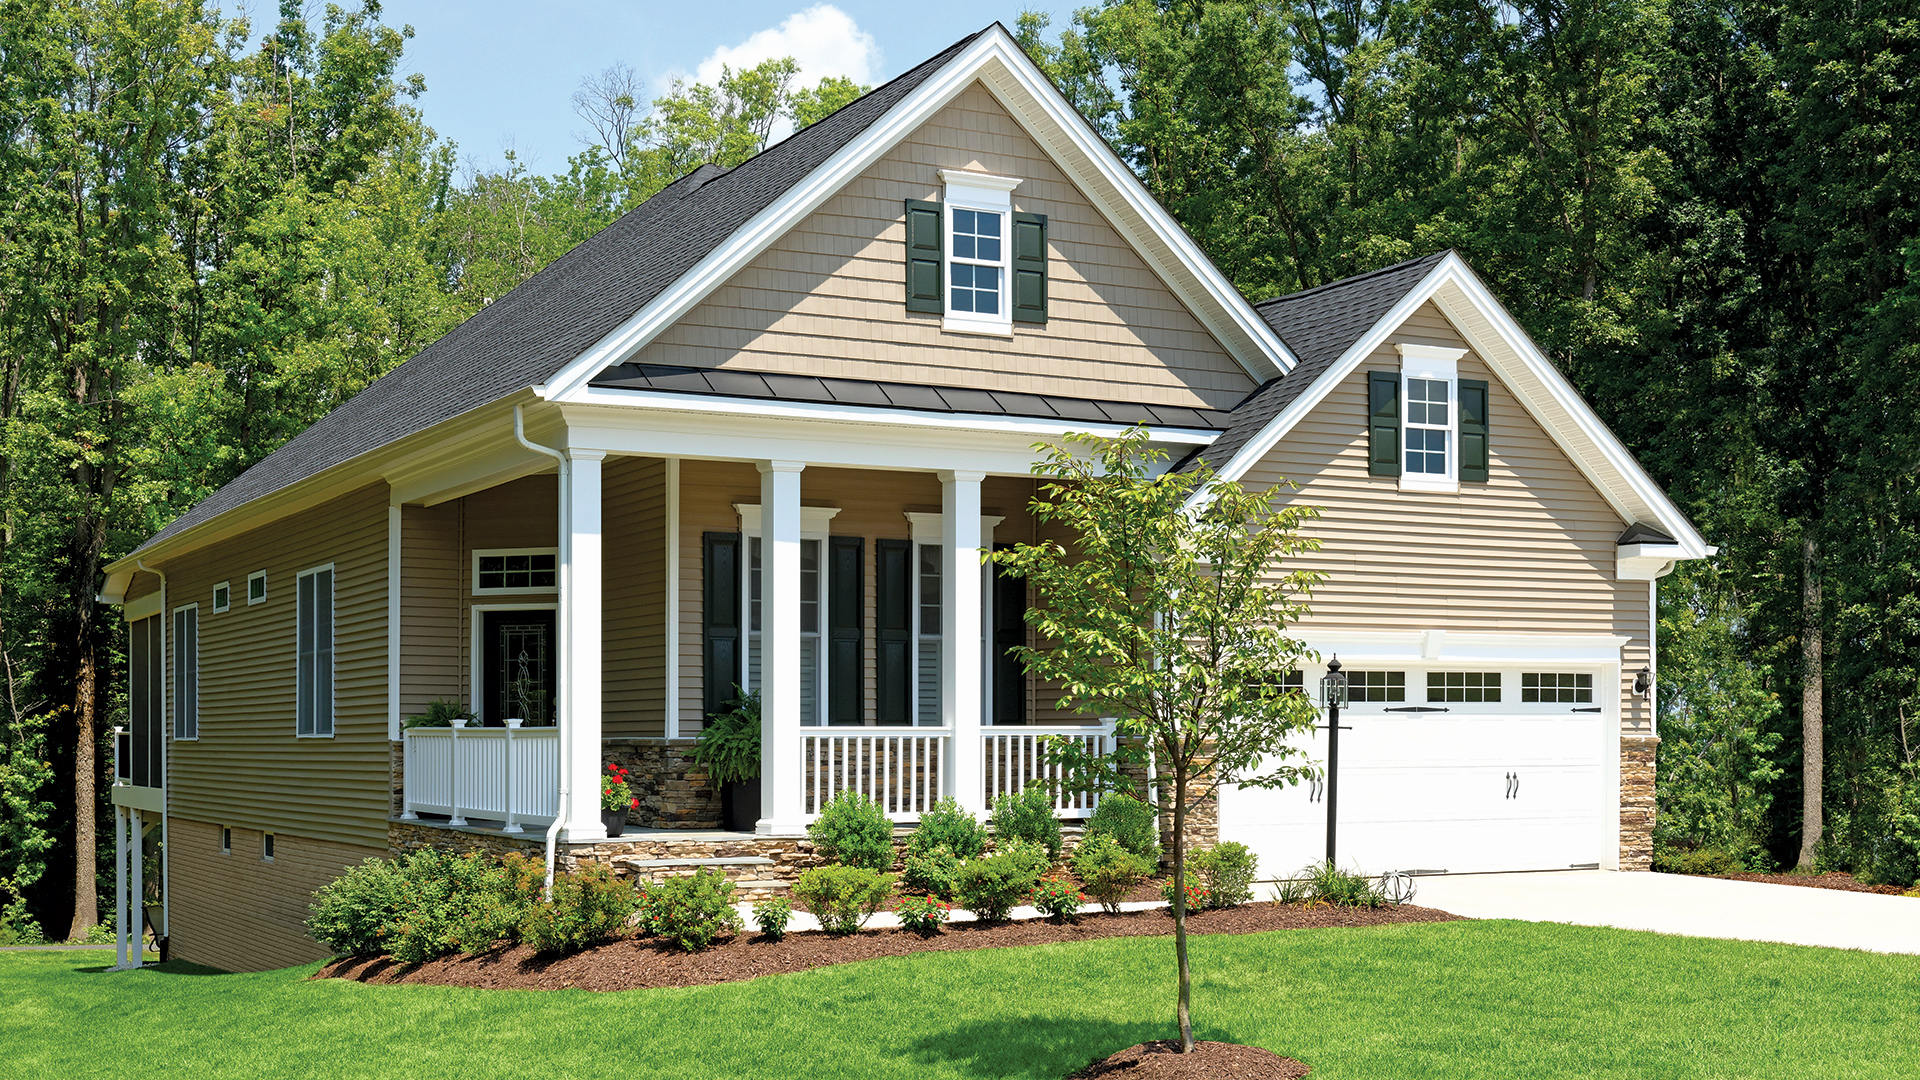 Regency at chancellorsville the newbury home design for Home architecture newbury